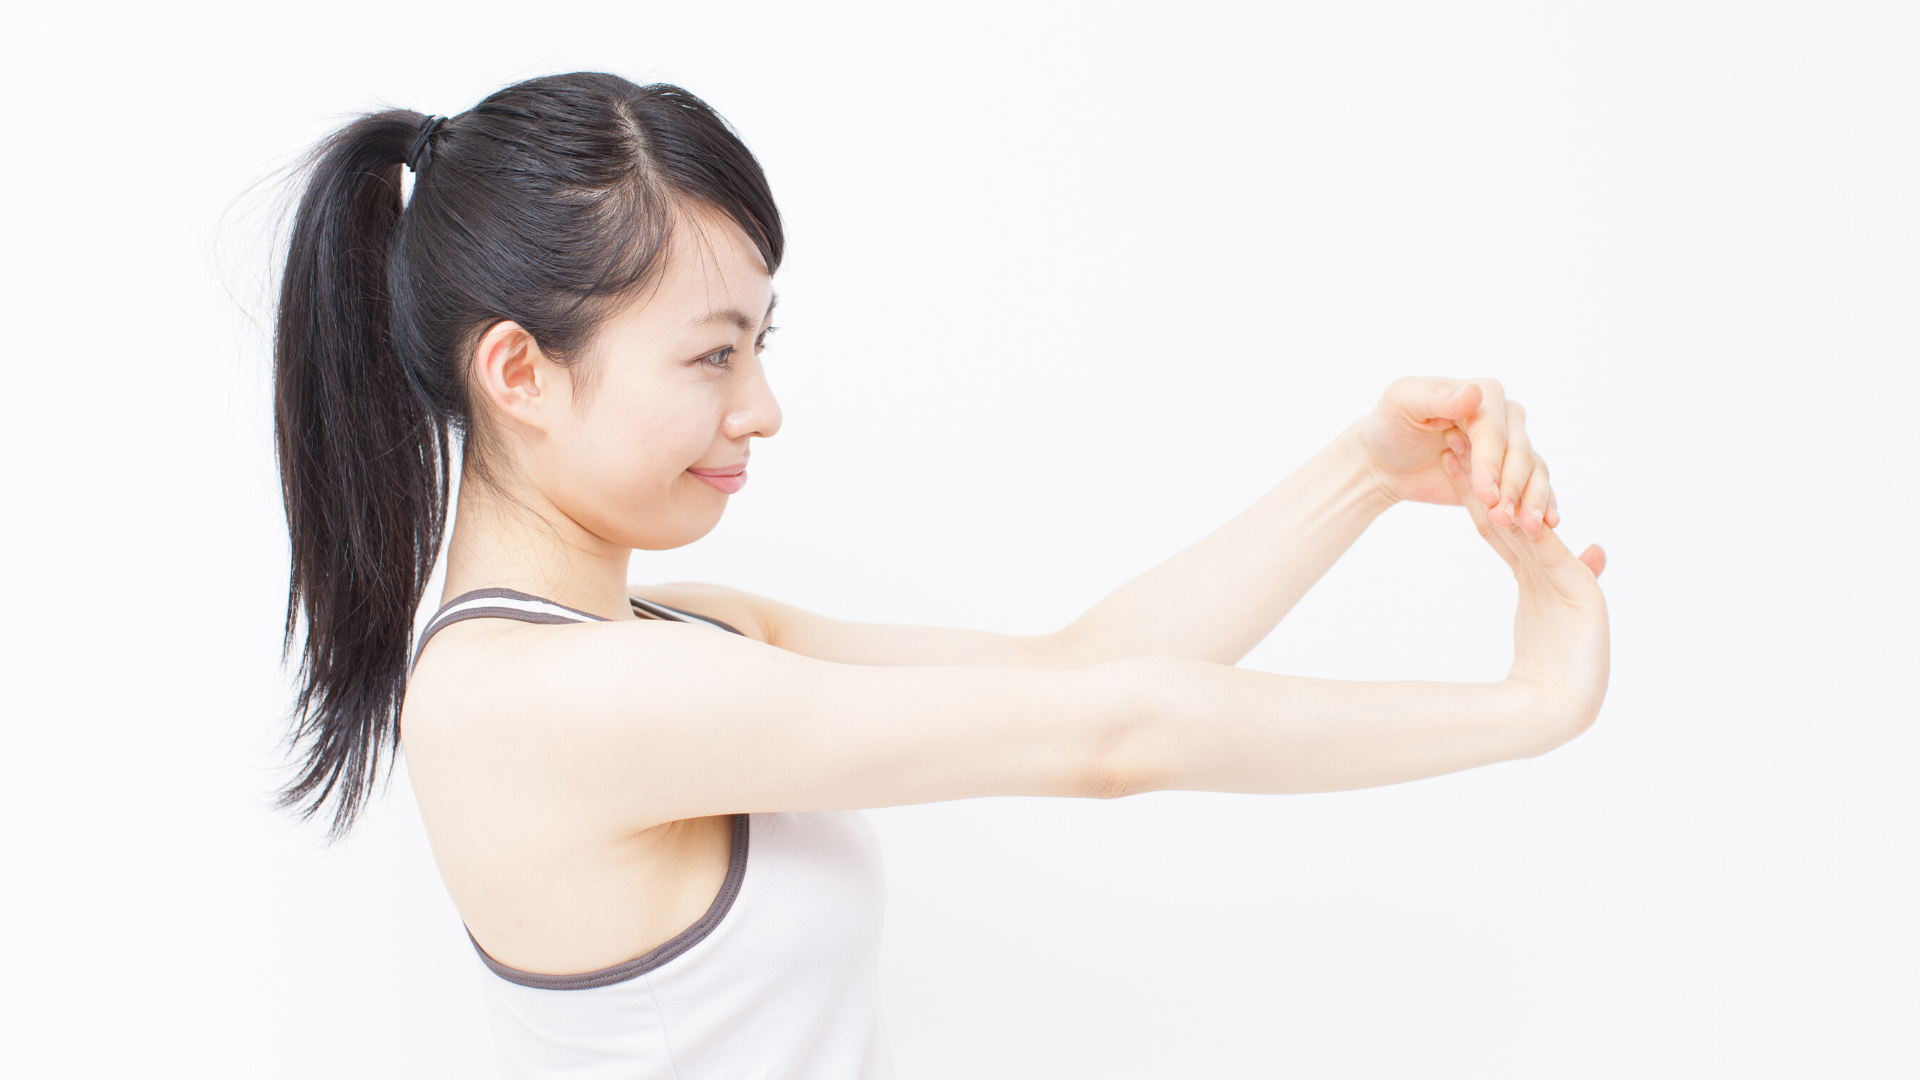 Woman practicing yoga wrist stretch.